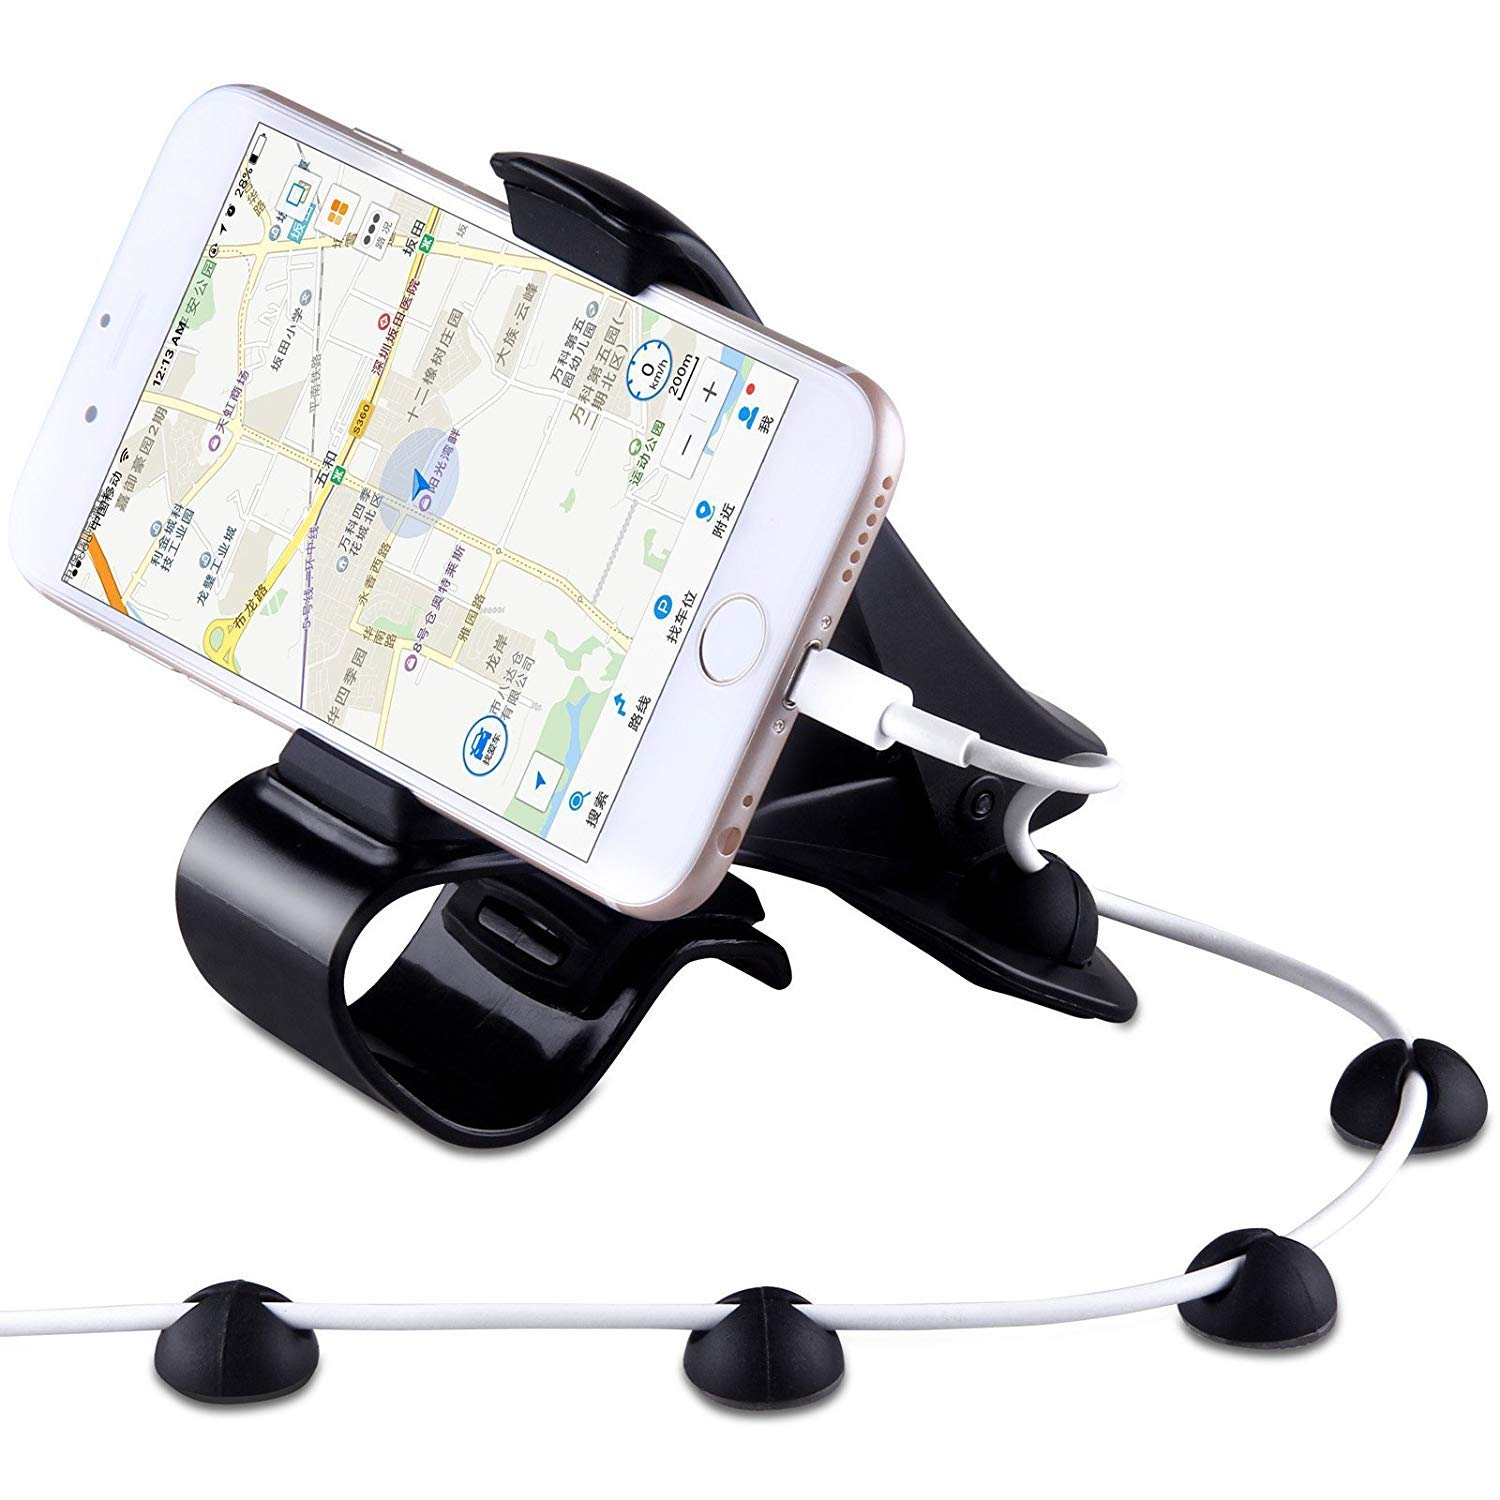 Phone Holder for car Suitable:3.5-6.5 in URUTOREO Car Phone Holder Mount HUD Design with Cable Clips Durable Dashboard car Mount for iPhone Xs MAX//X//8//7//6//6S Plus//Samsung Huawei,etc No Blocking for Sight